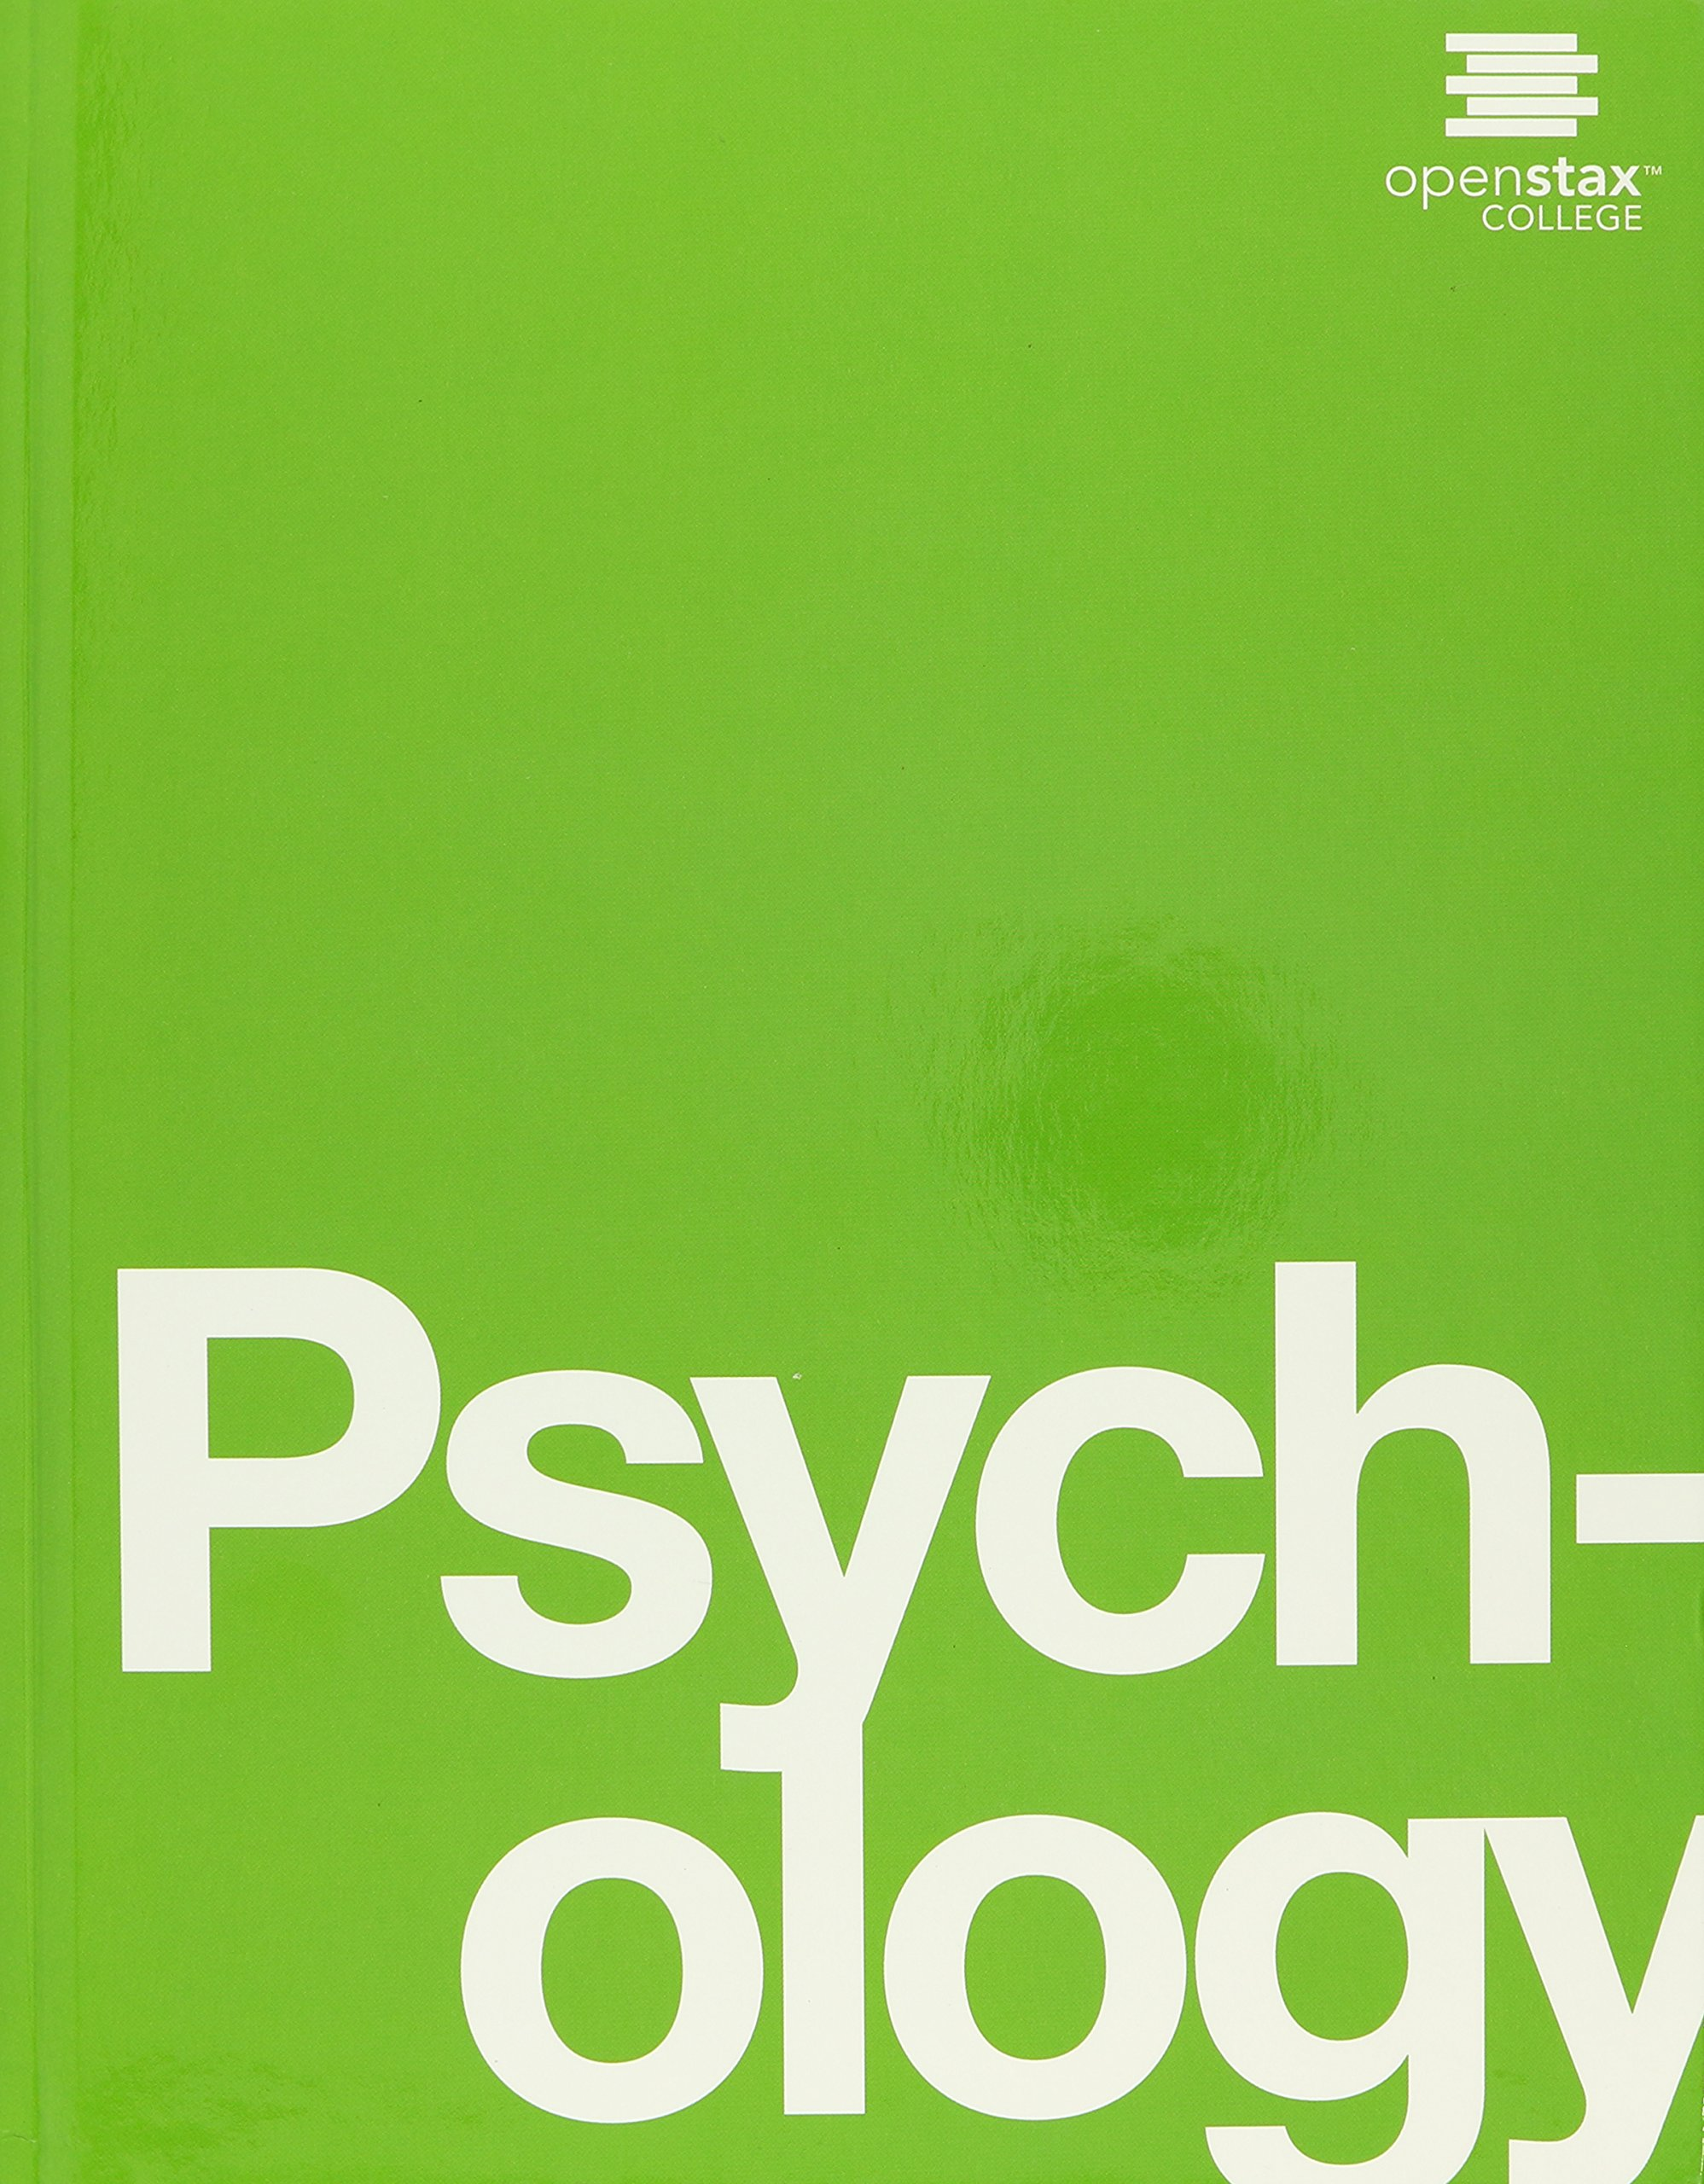 Psychology Openstax Book Cover